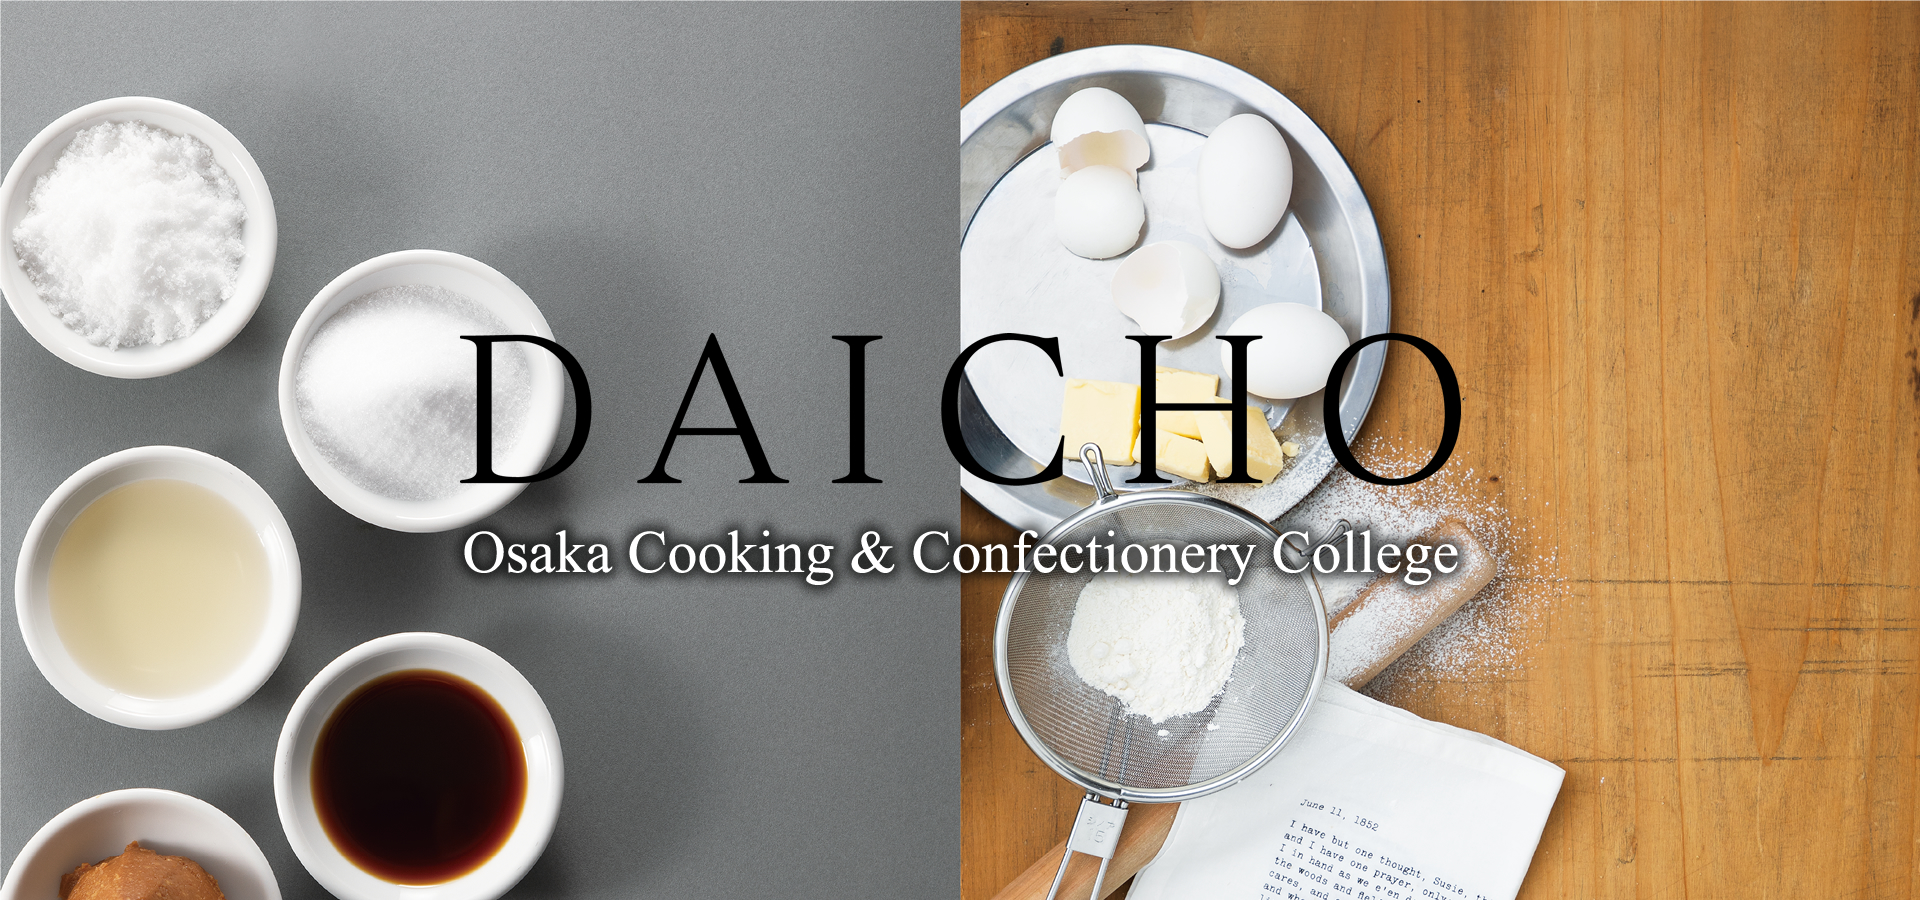 Osaka Cooking & Confectionery College